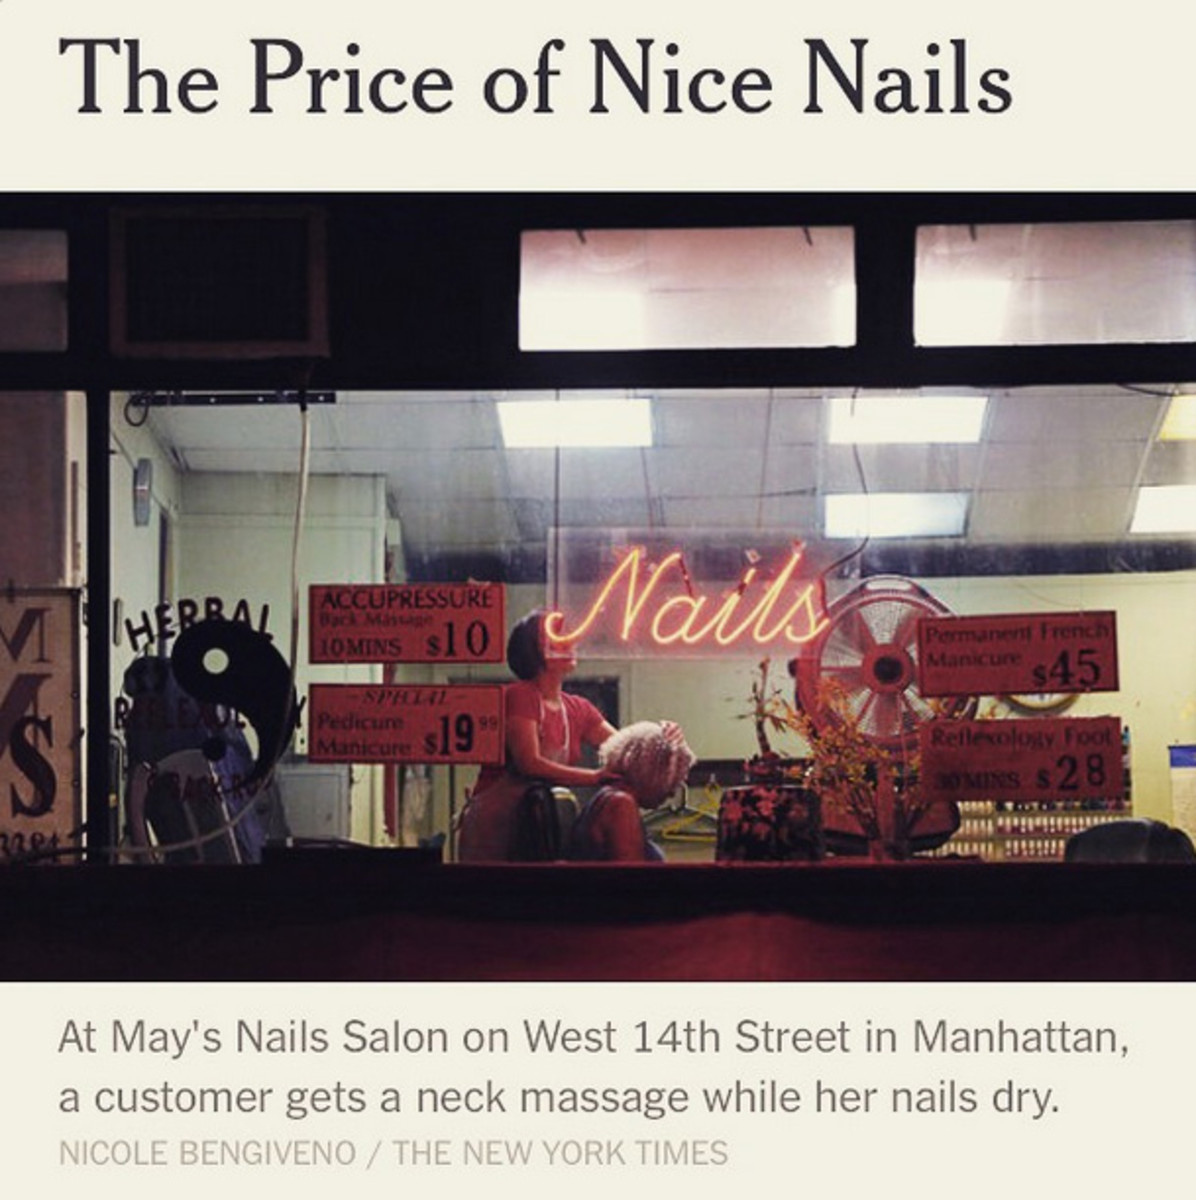 NYC nail salon expose_new york times the price of nice nails